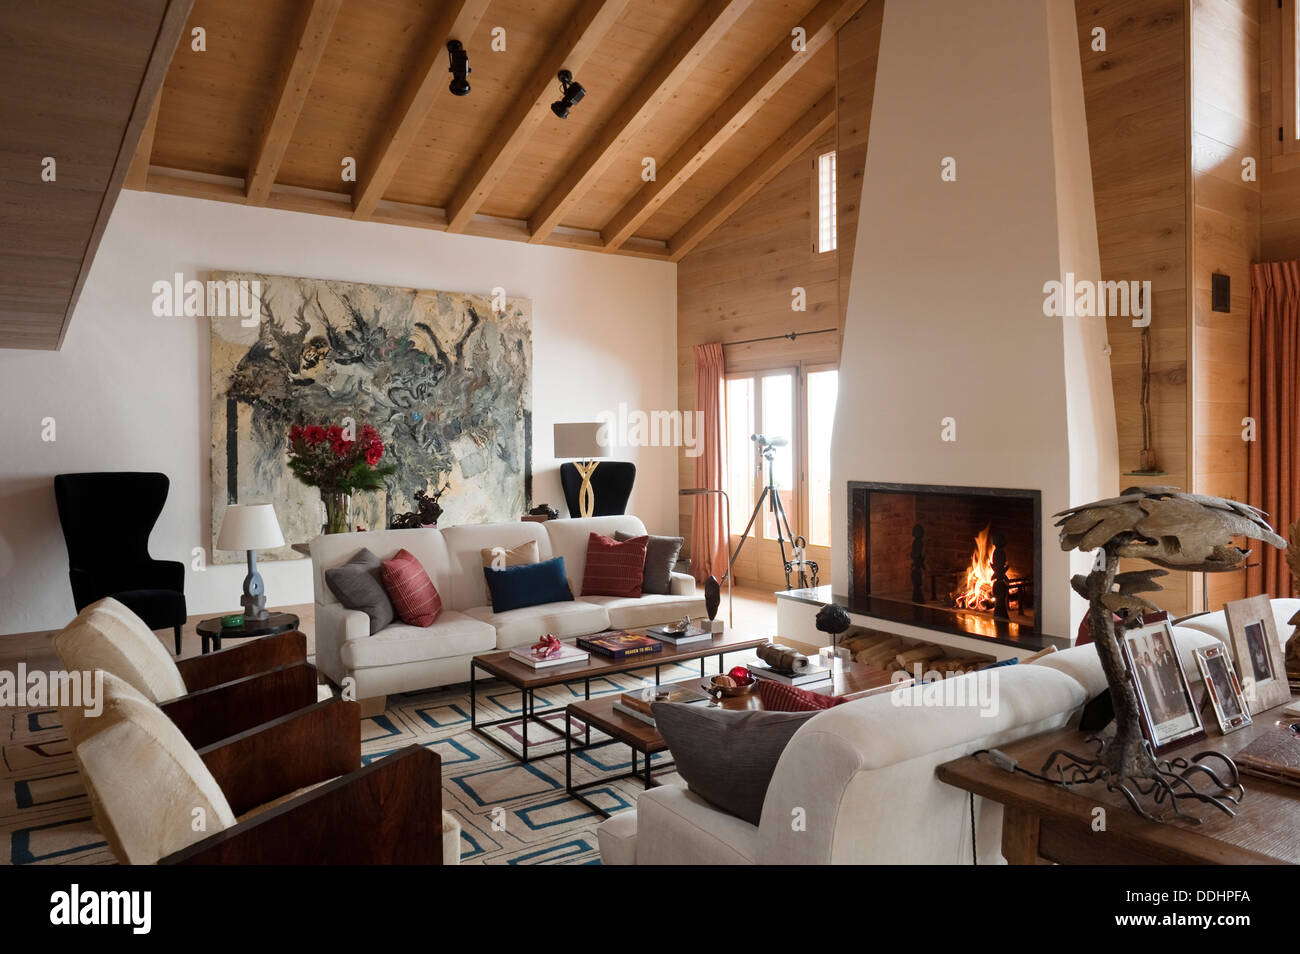 Swiss chalet with interior designed by tino zervudachi for Swiss chalet house designs